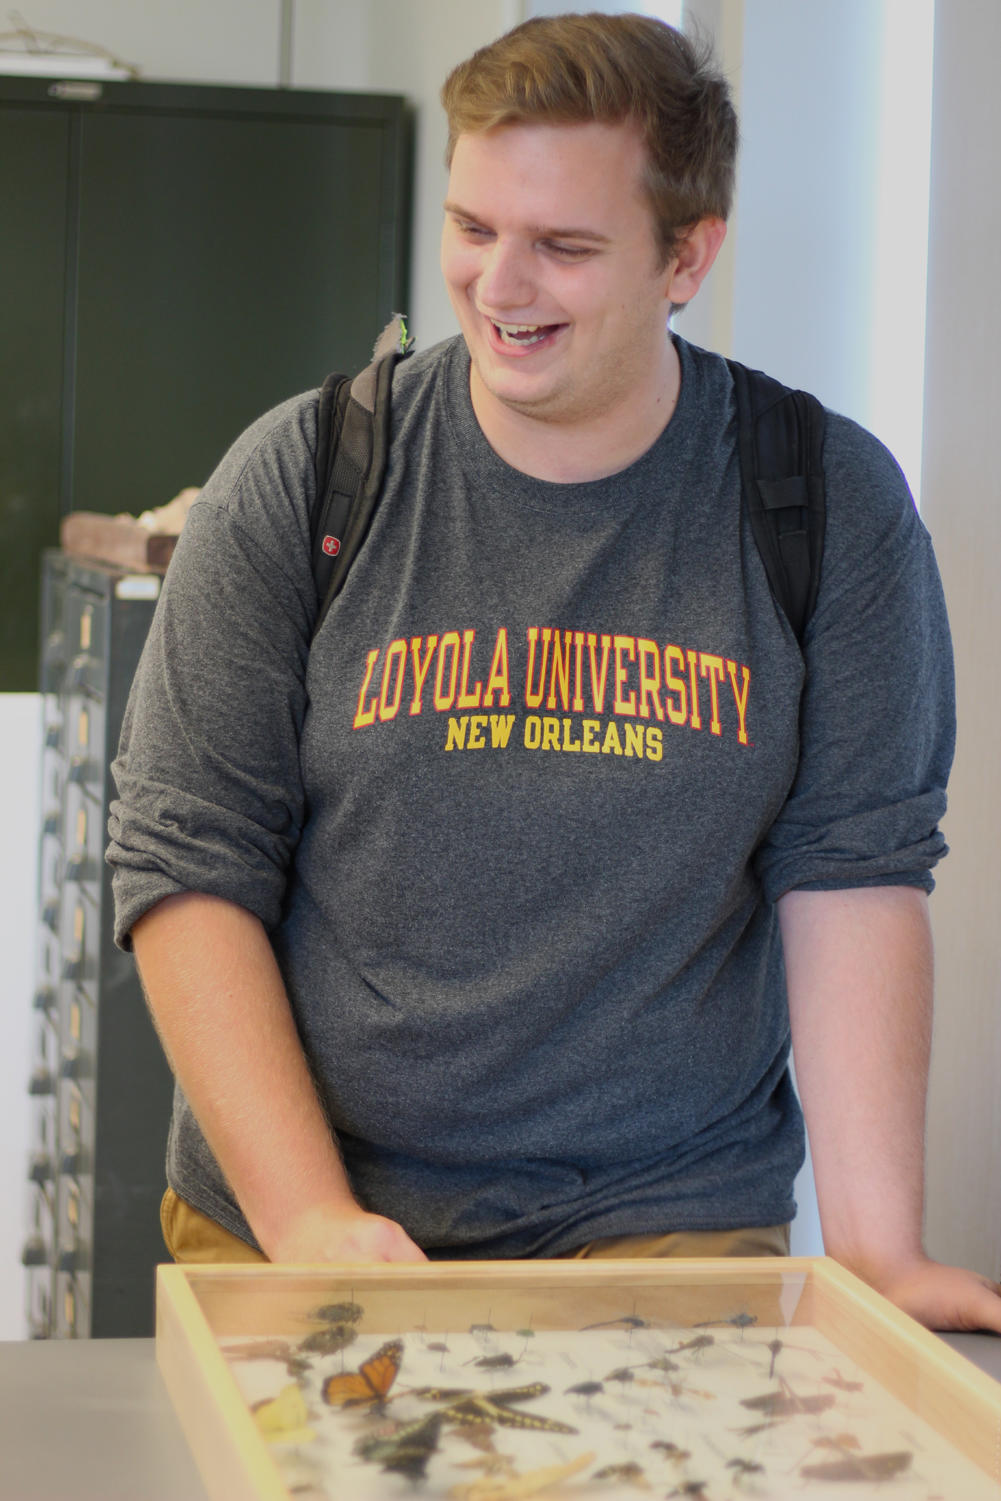 A cheerful Andrew Harper, environmental science senior, smiles as he describes his upcoming talk. Harper's thesis was driven by his interest in the interactions between dragonflies and an urban environment. Photo credit: Cristian Orellana